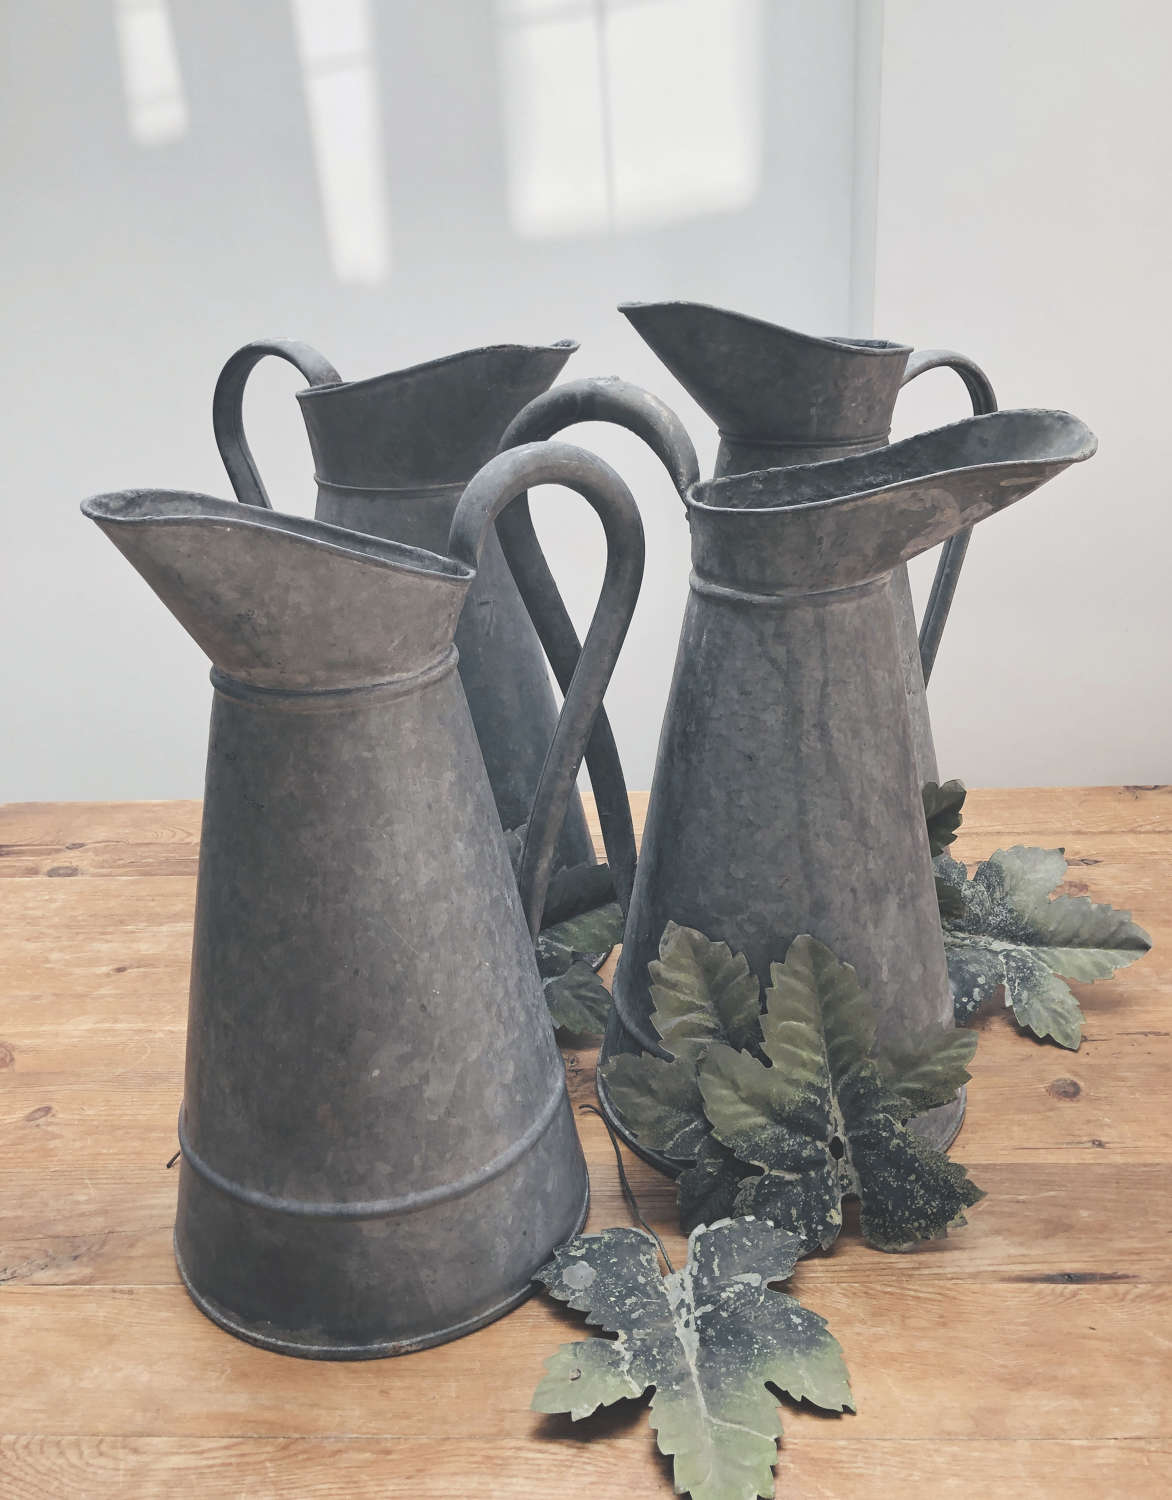 4 Old French Zinc Wash Jugs - circa 1920